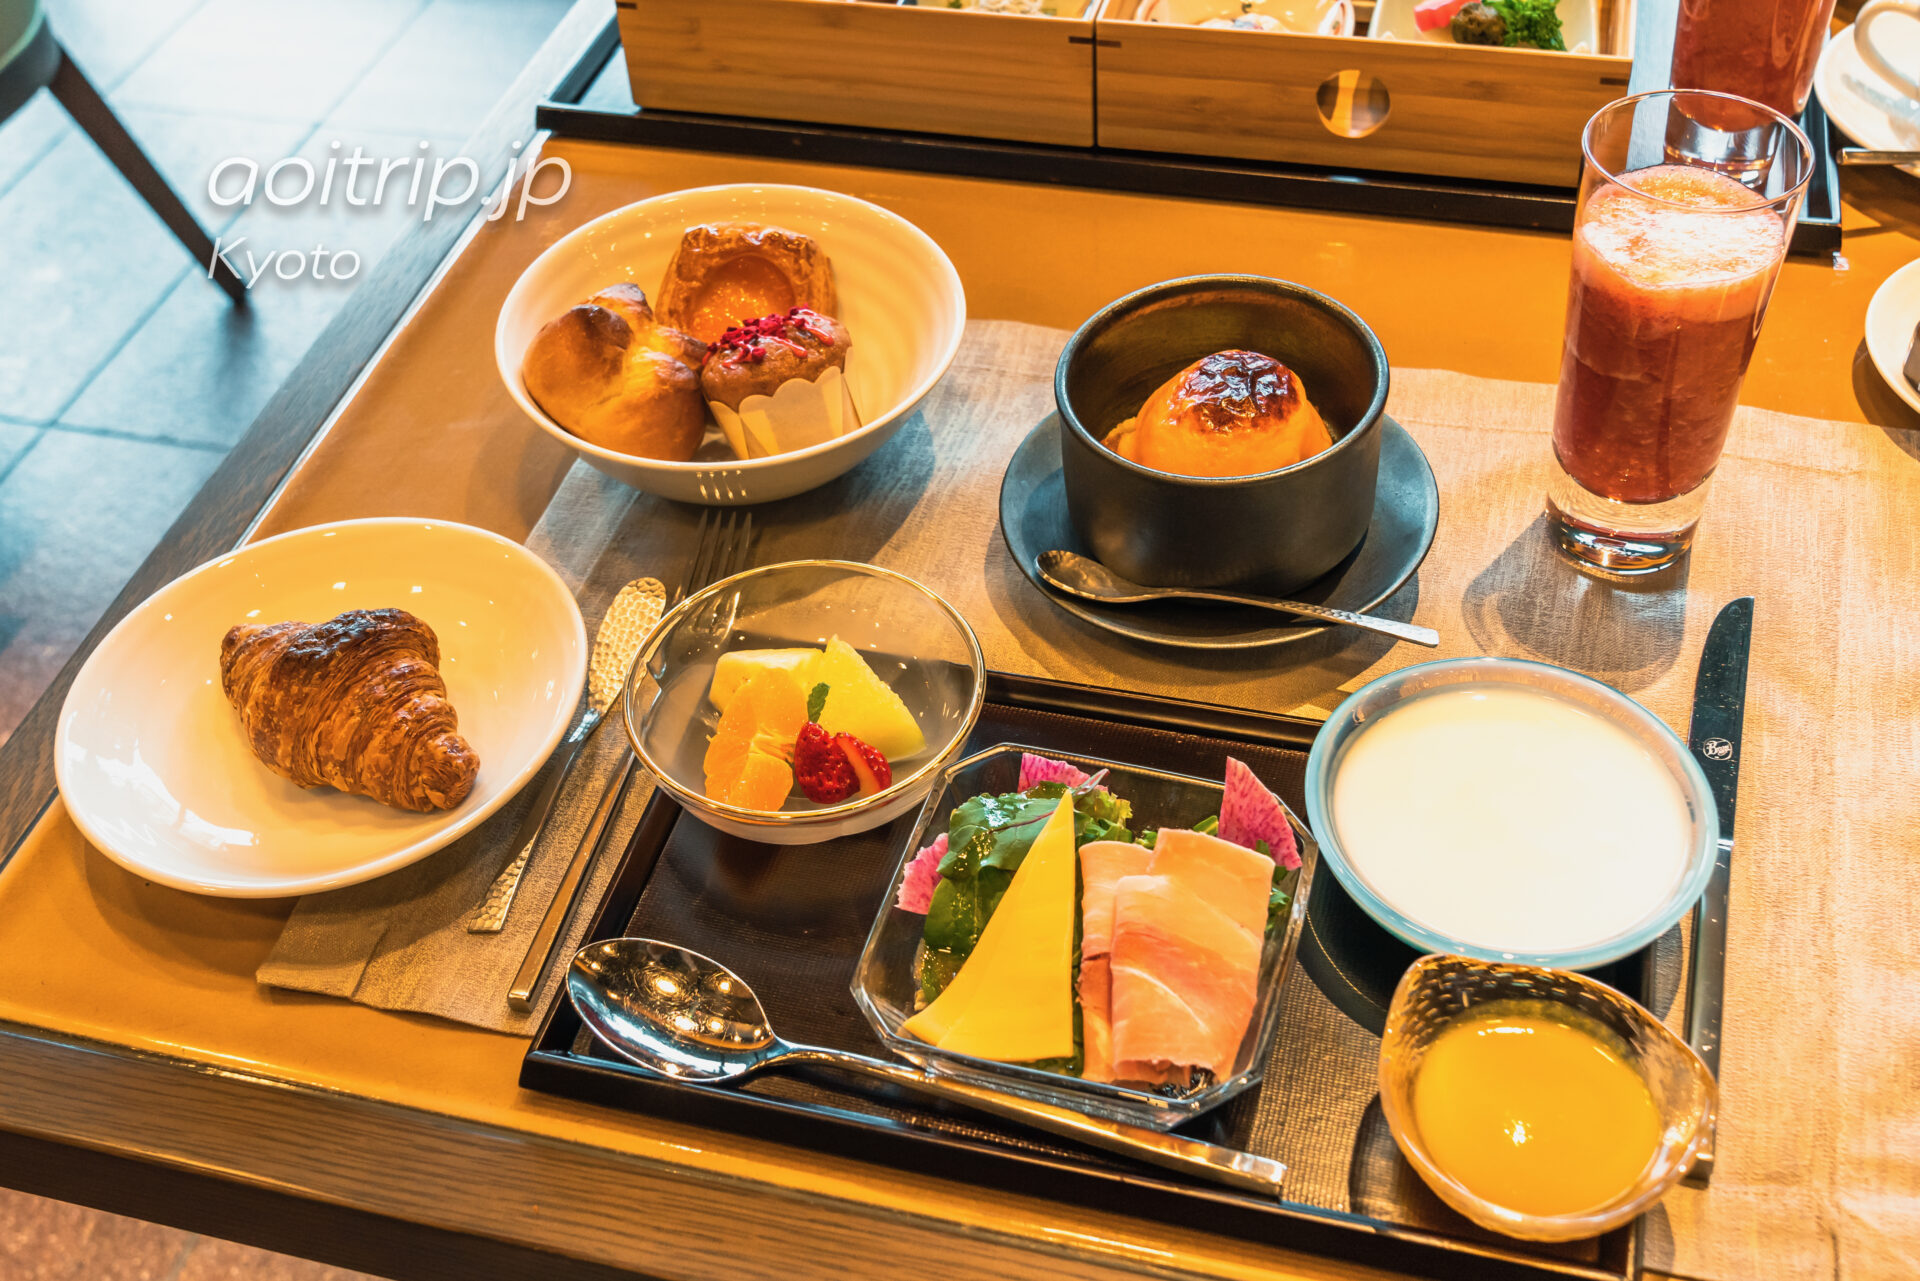 HOTEL THE MITSUI KYOTO, THE GARDEN BARの朝食 アメリカンブレックファスト